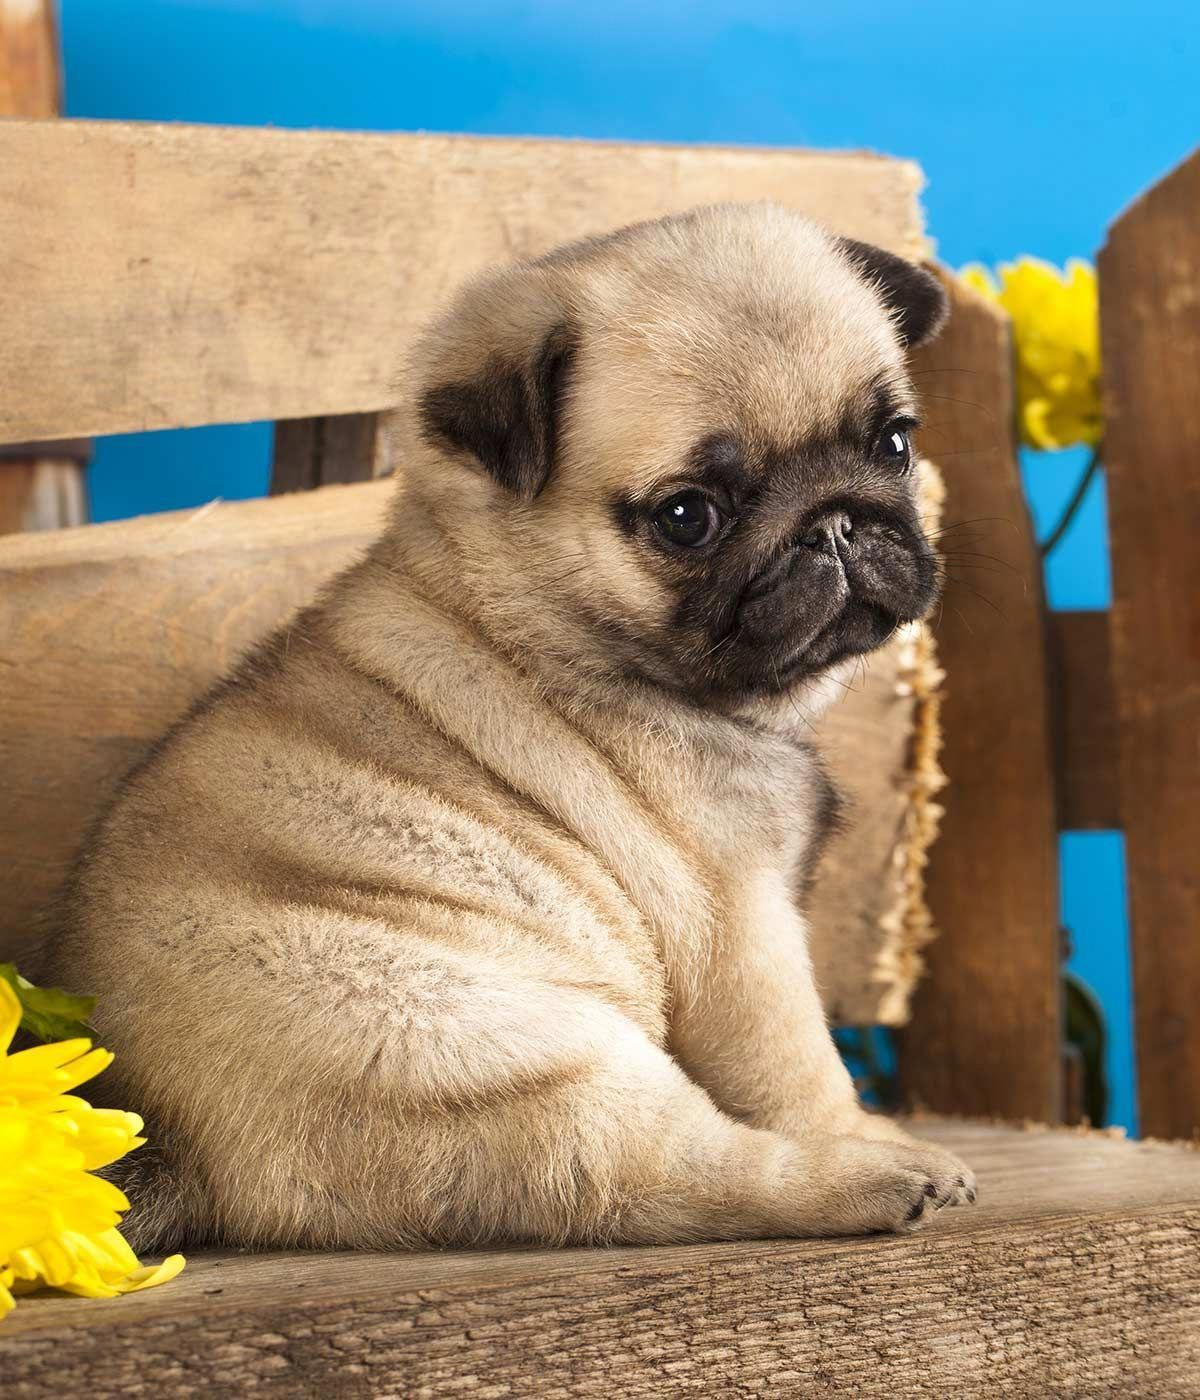 Awww Cute Pug Do You Love Cute Dogs Like This Follow